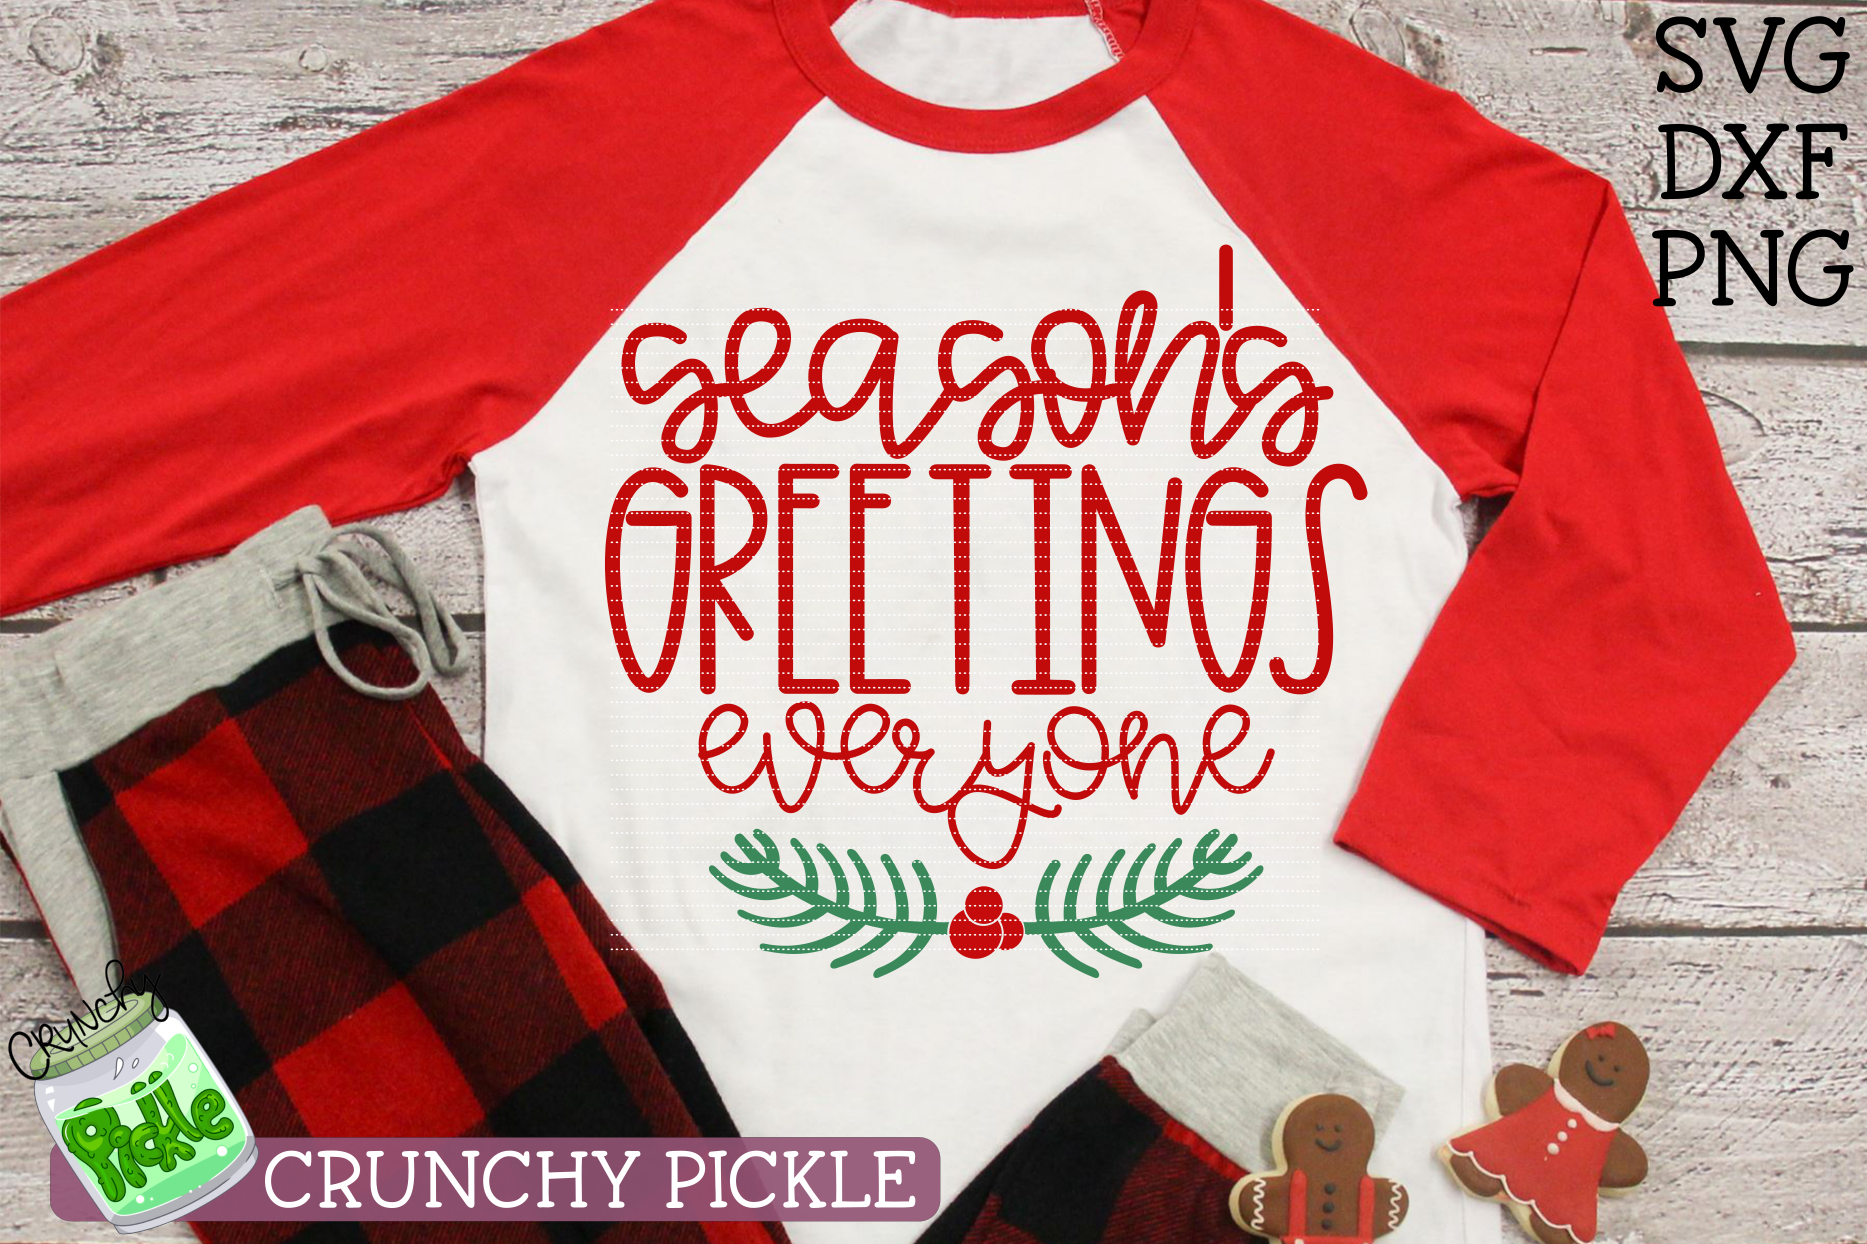 Season's Greetings Everyone SVG example image 3